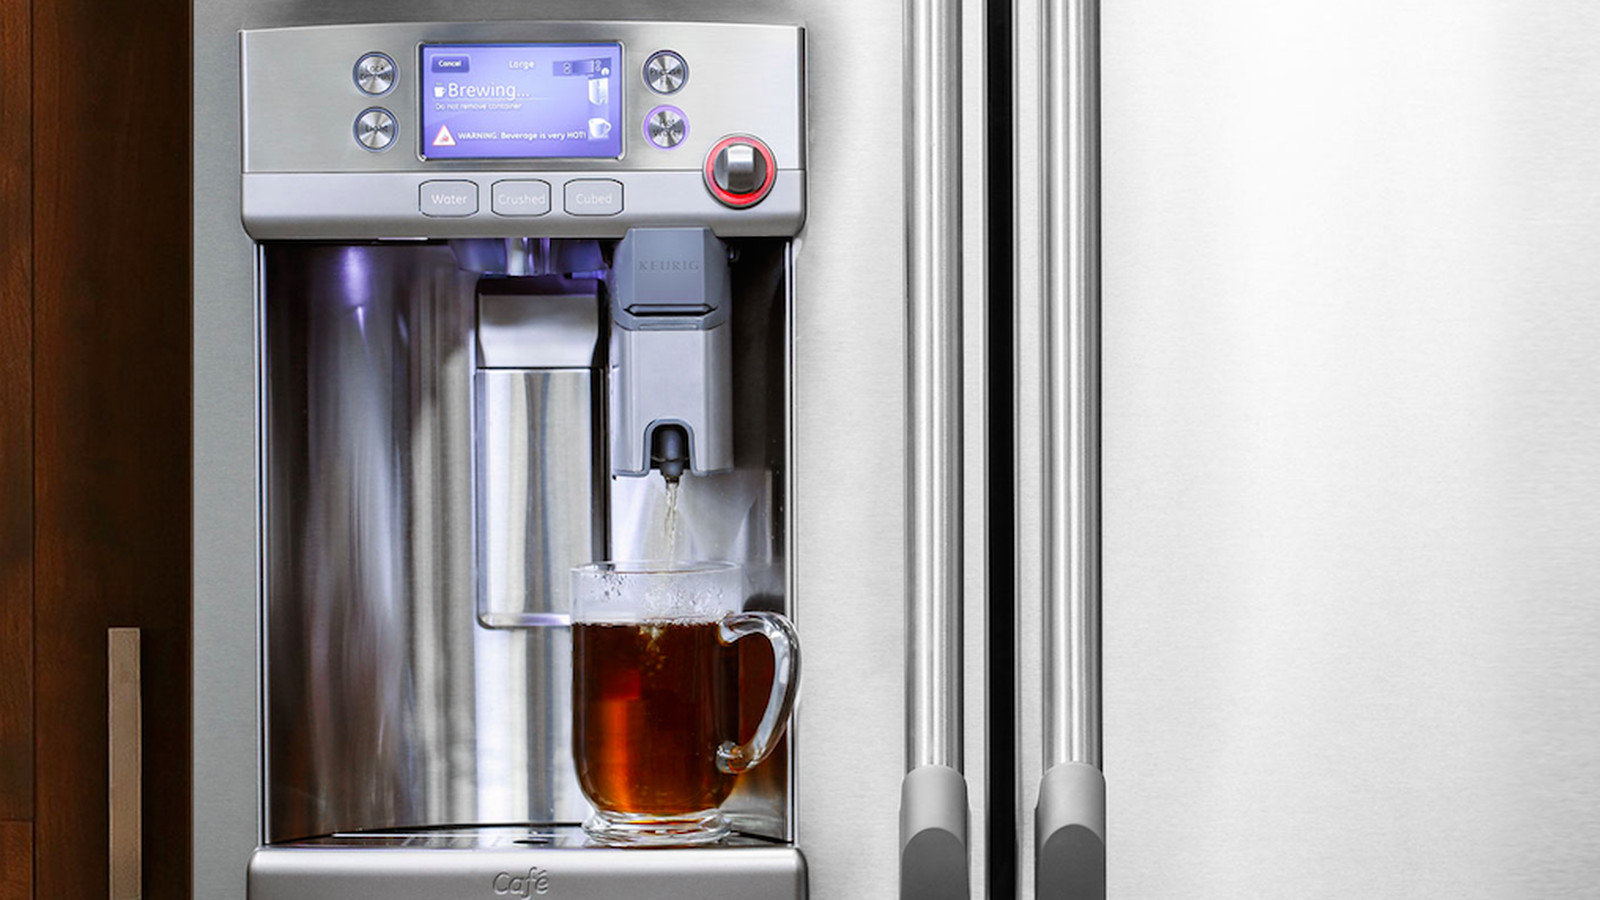 Refrigerator With Built In Coffee Maker Is Flashier Than A